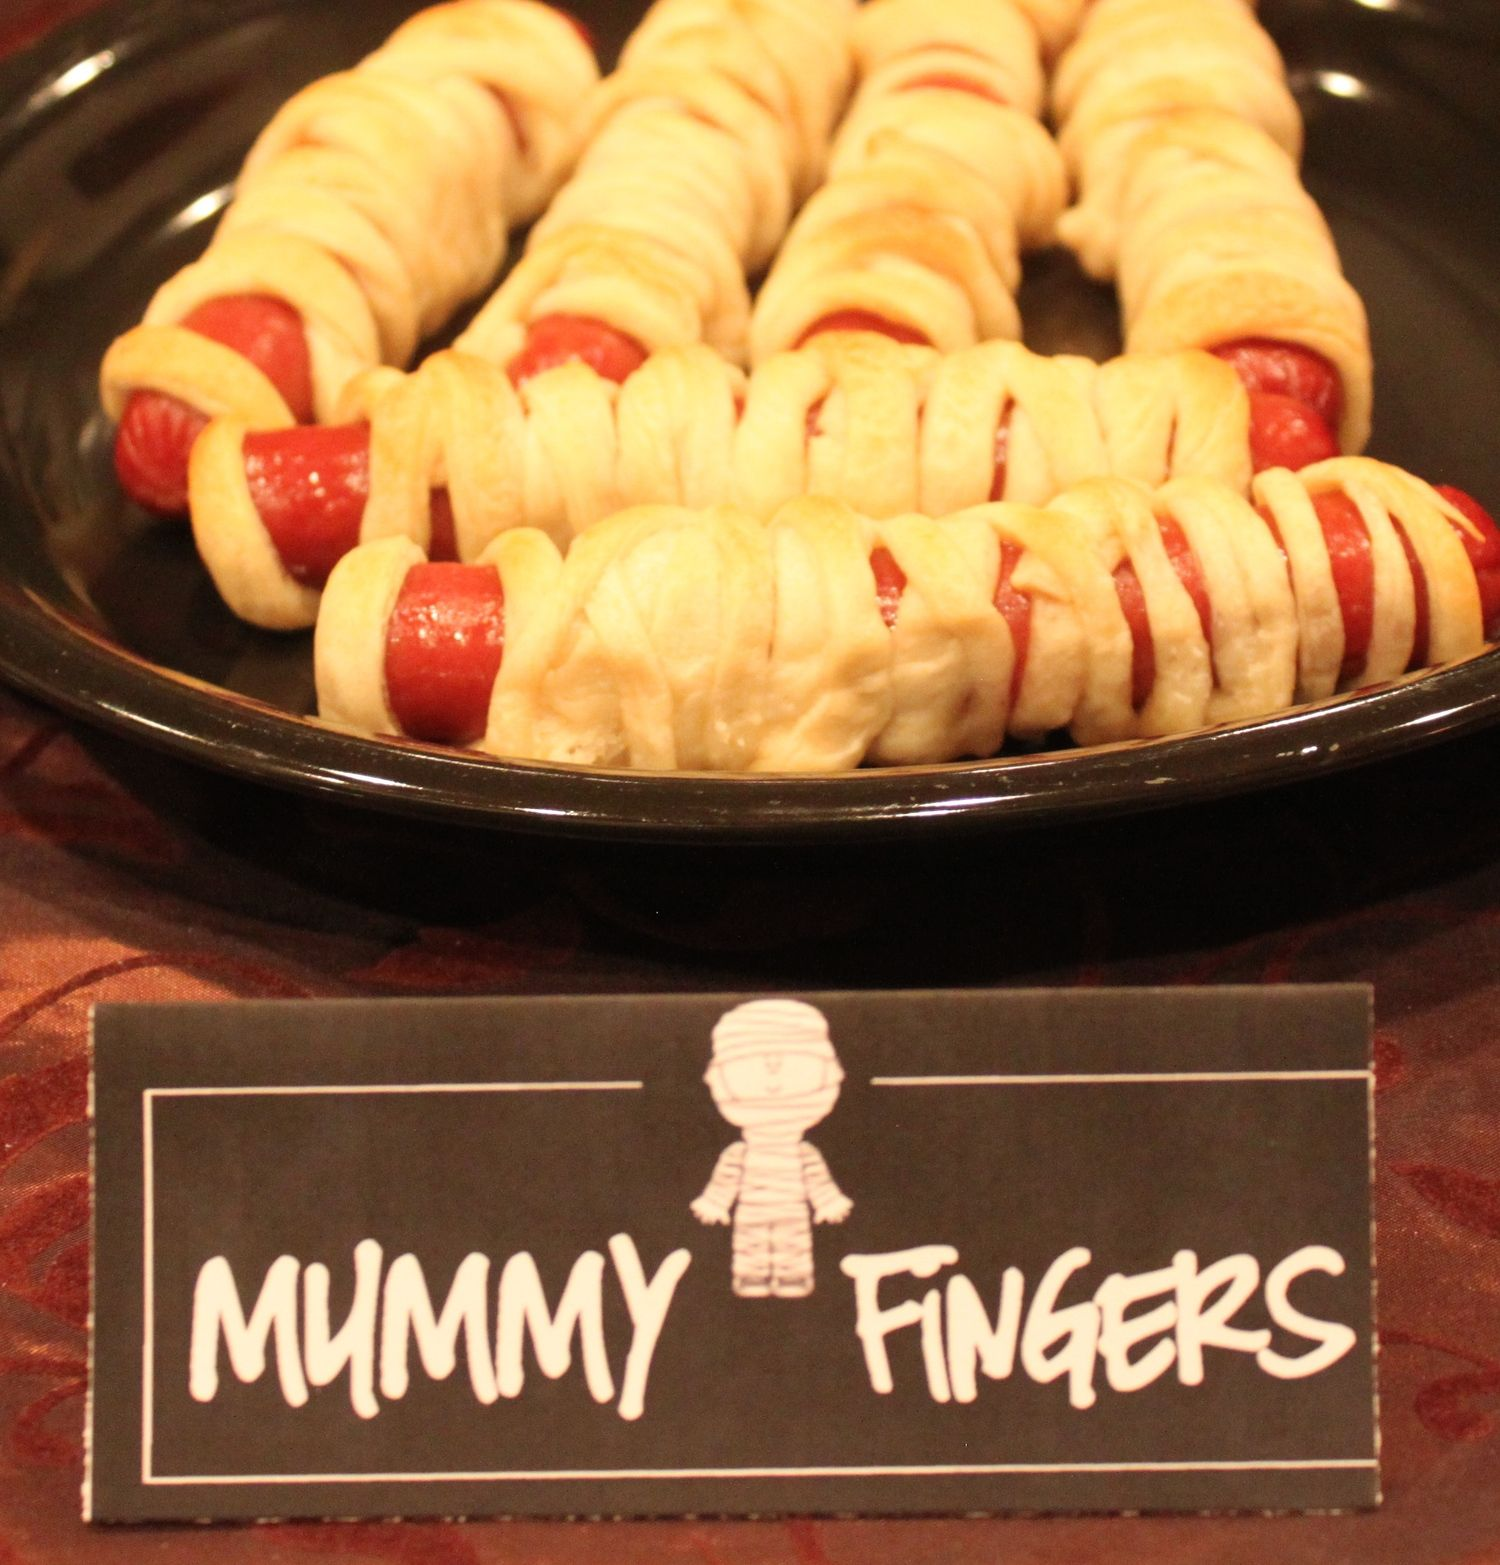 Mummy fingers (or just mummies) are an easy fun finger food for ...